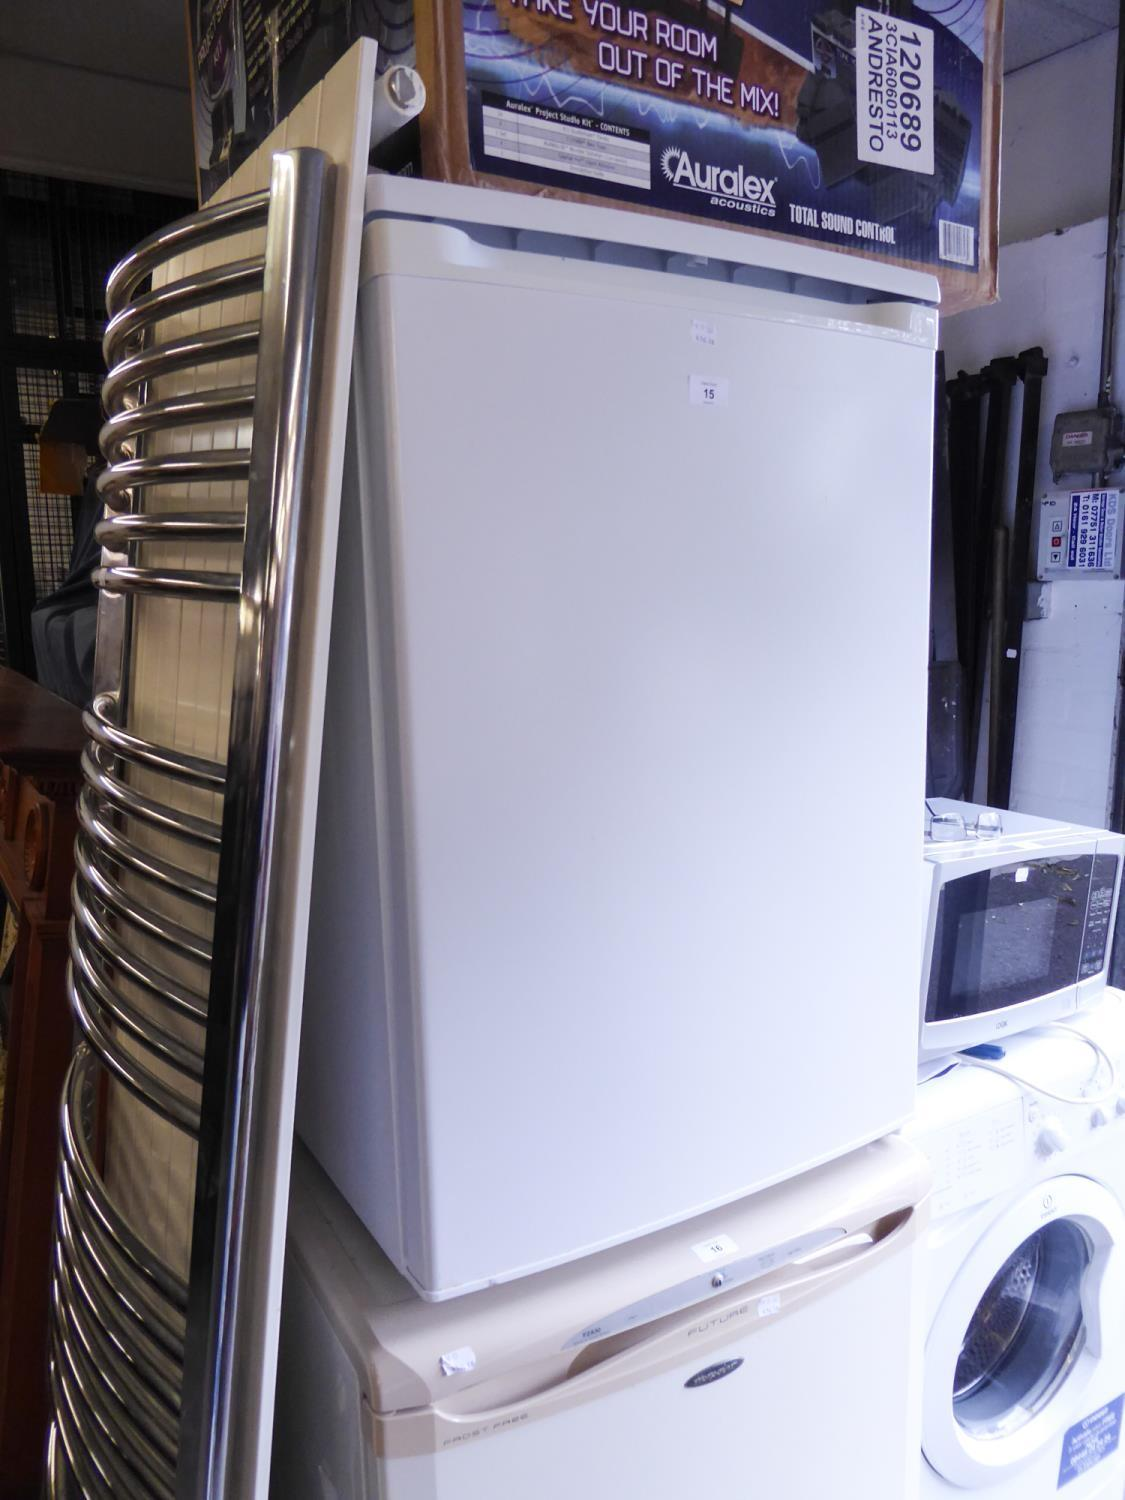 CURRY'S ELECTRIC REFRIGERATOR